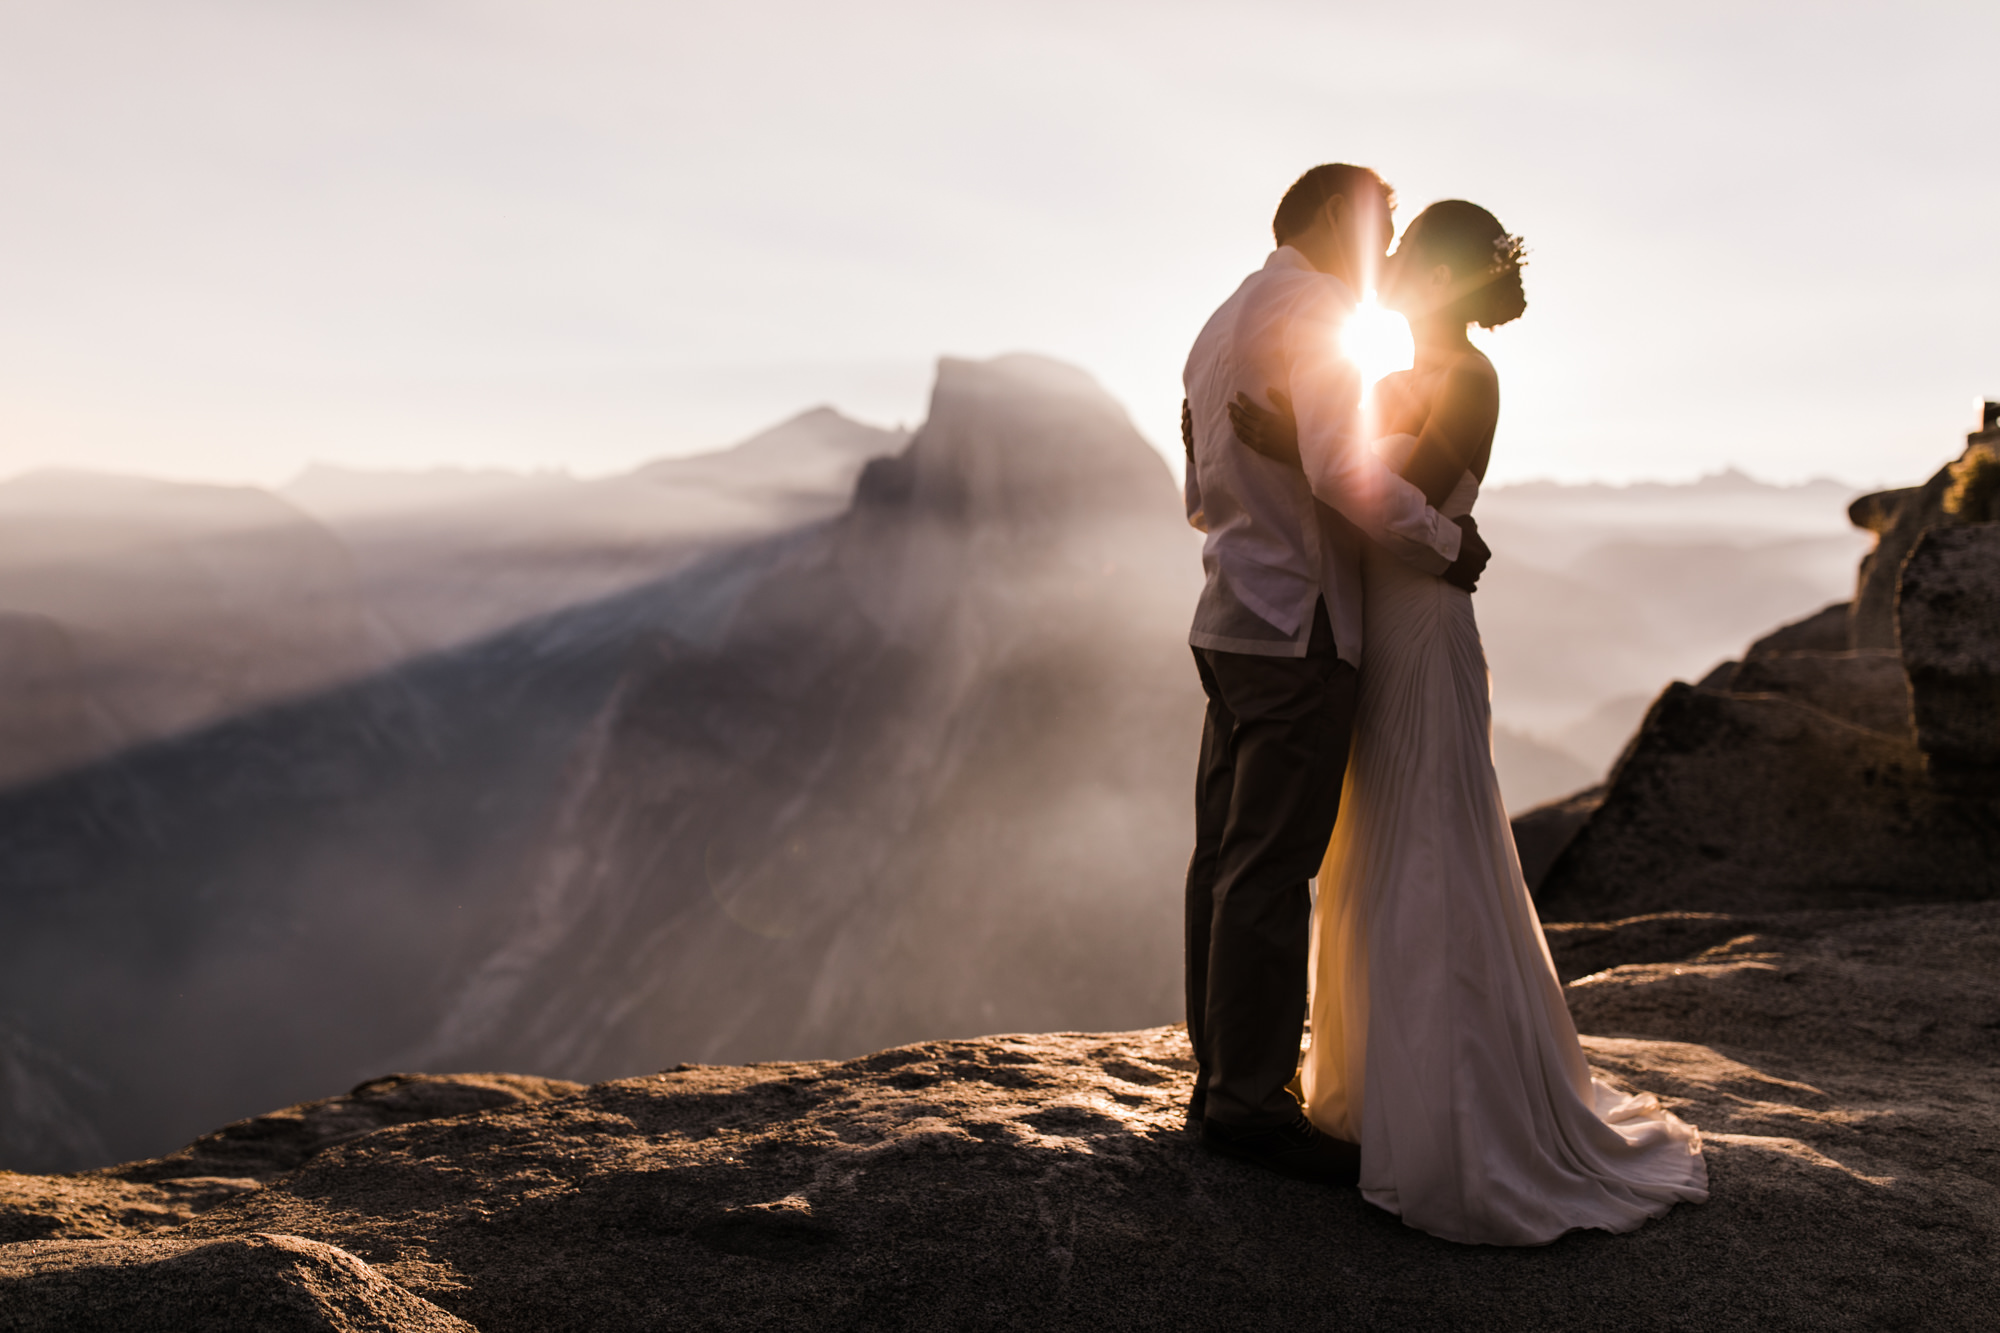 yosemite-destination-wedding-photographer-40.jpg